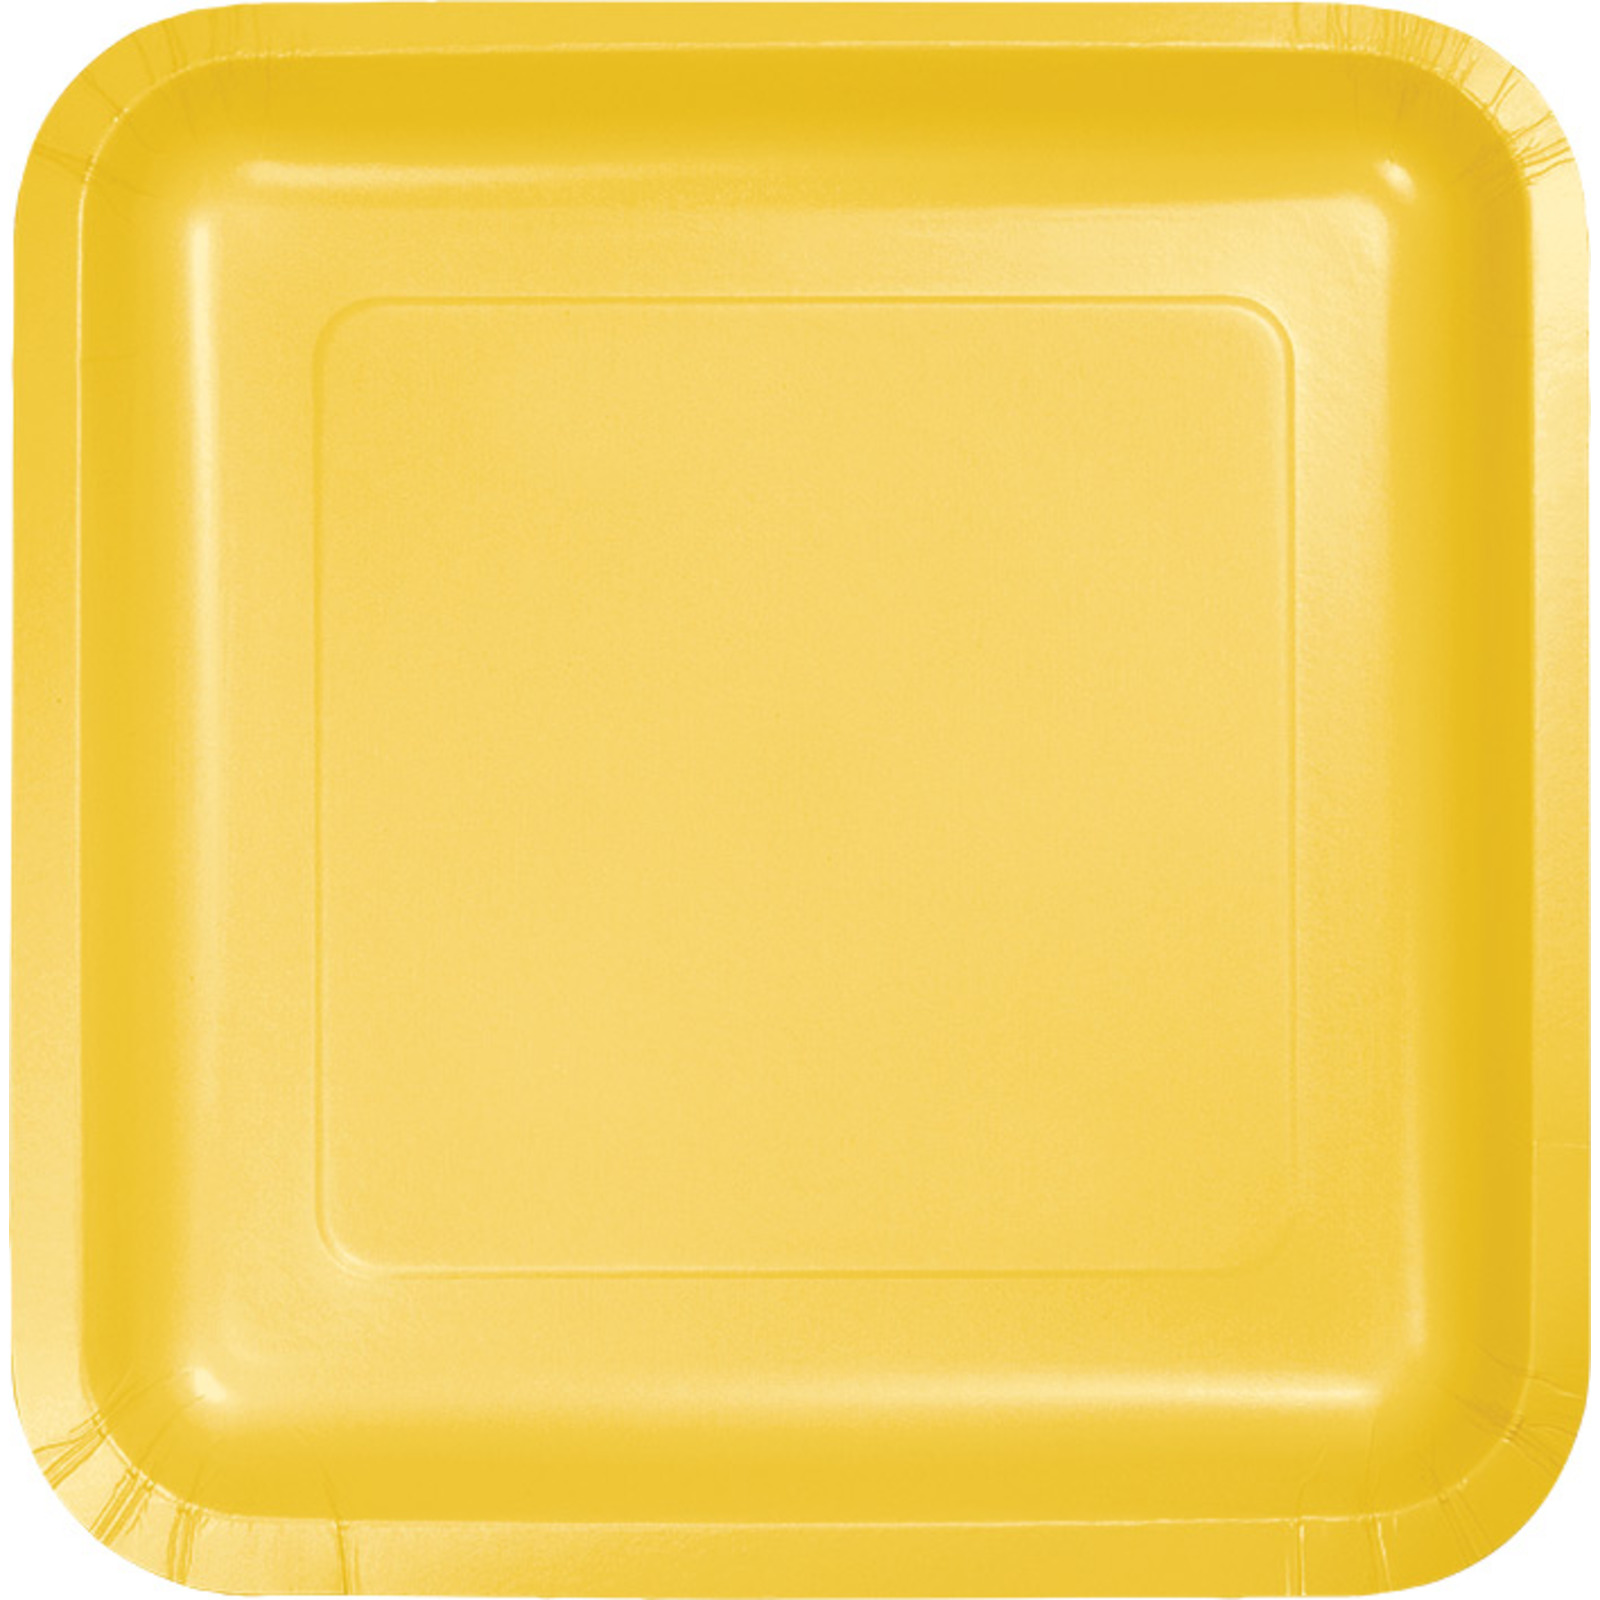 Creative Converting Yellow 7 Inch Square Lunch Plates